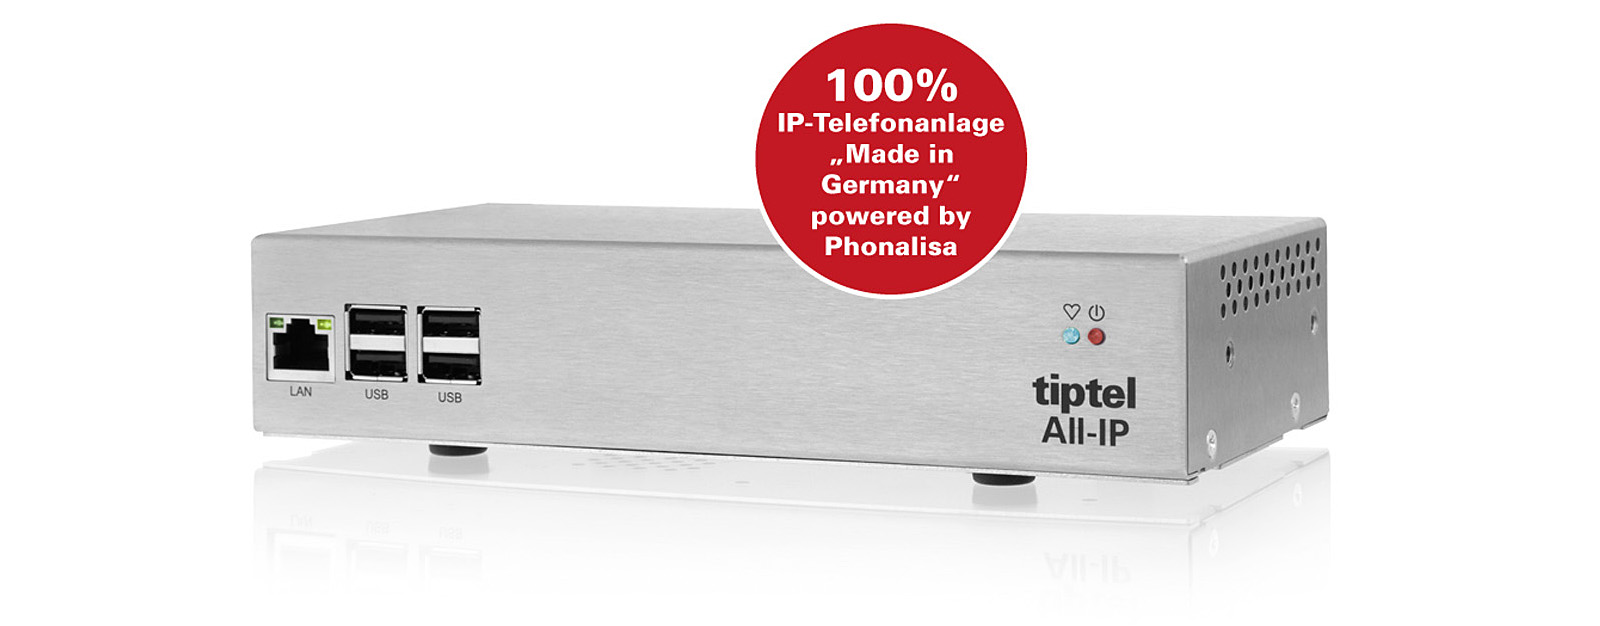 tiptel 8010 All-IP Appliance